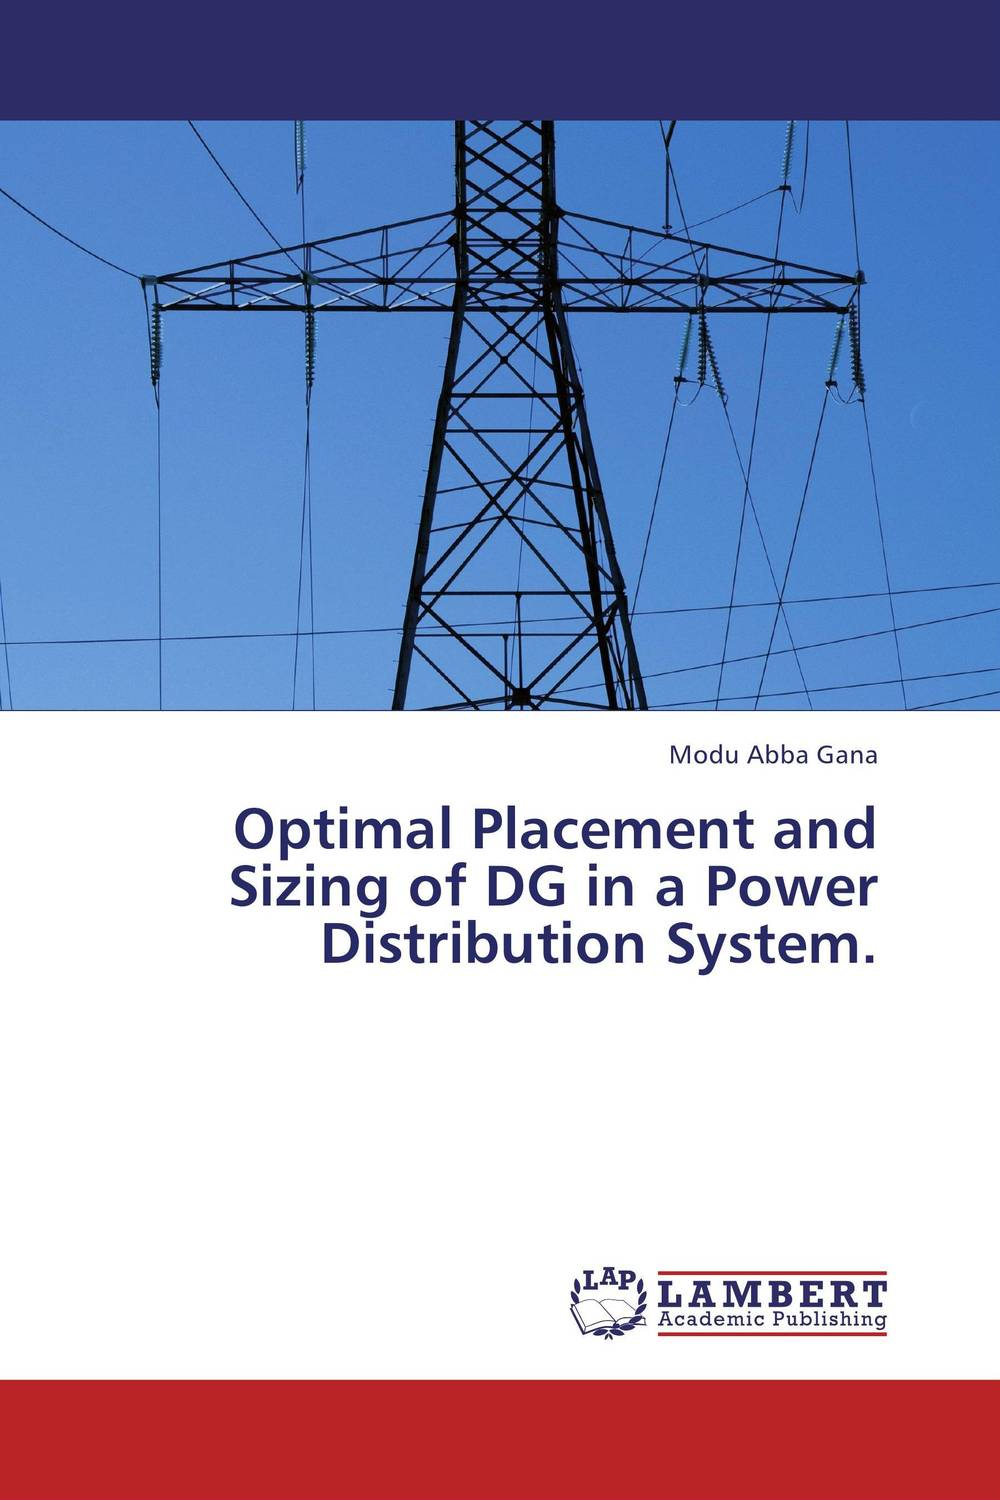 Optimal Placement and Sizing of DG in a Power Distribution System the optimal planning for power generation by waste